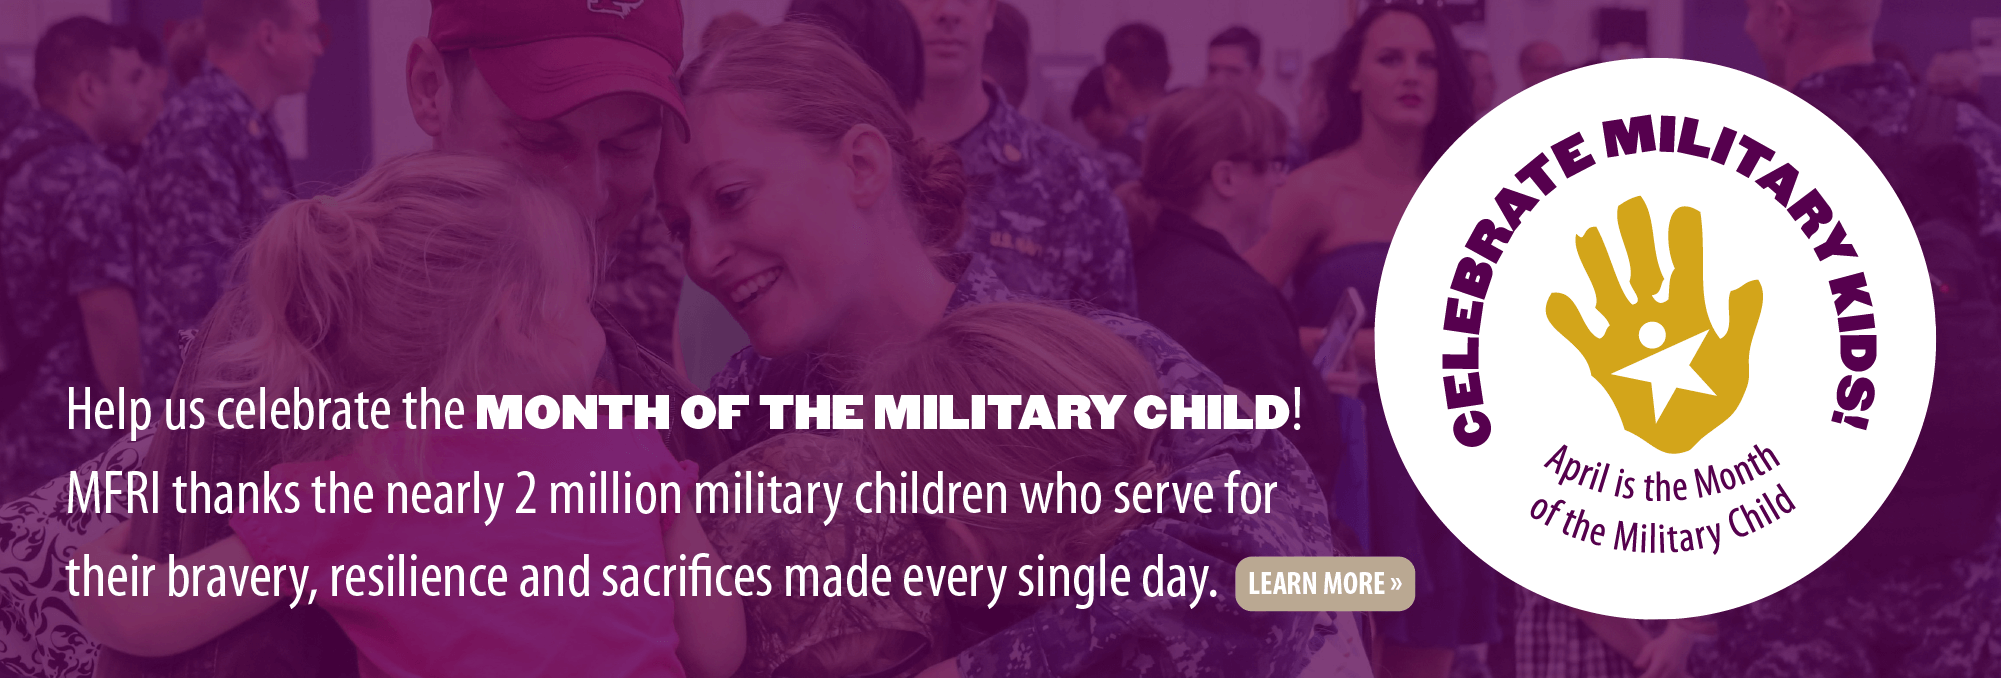 Help us celebrate the Month of the Military Child! MFRI thanks the nearly 2 million military children who serve for their bravery, resilience and sacrifices made every single day. Click to learn more.